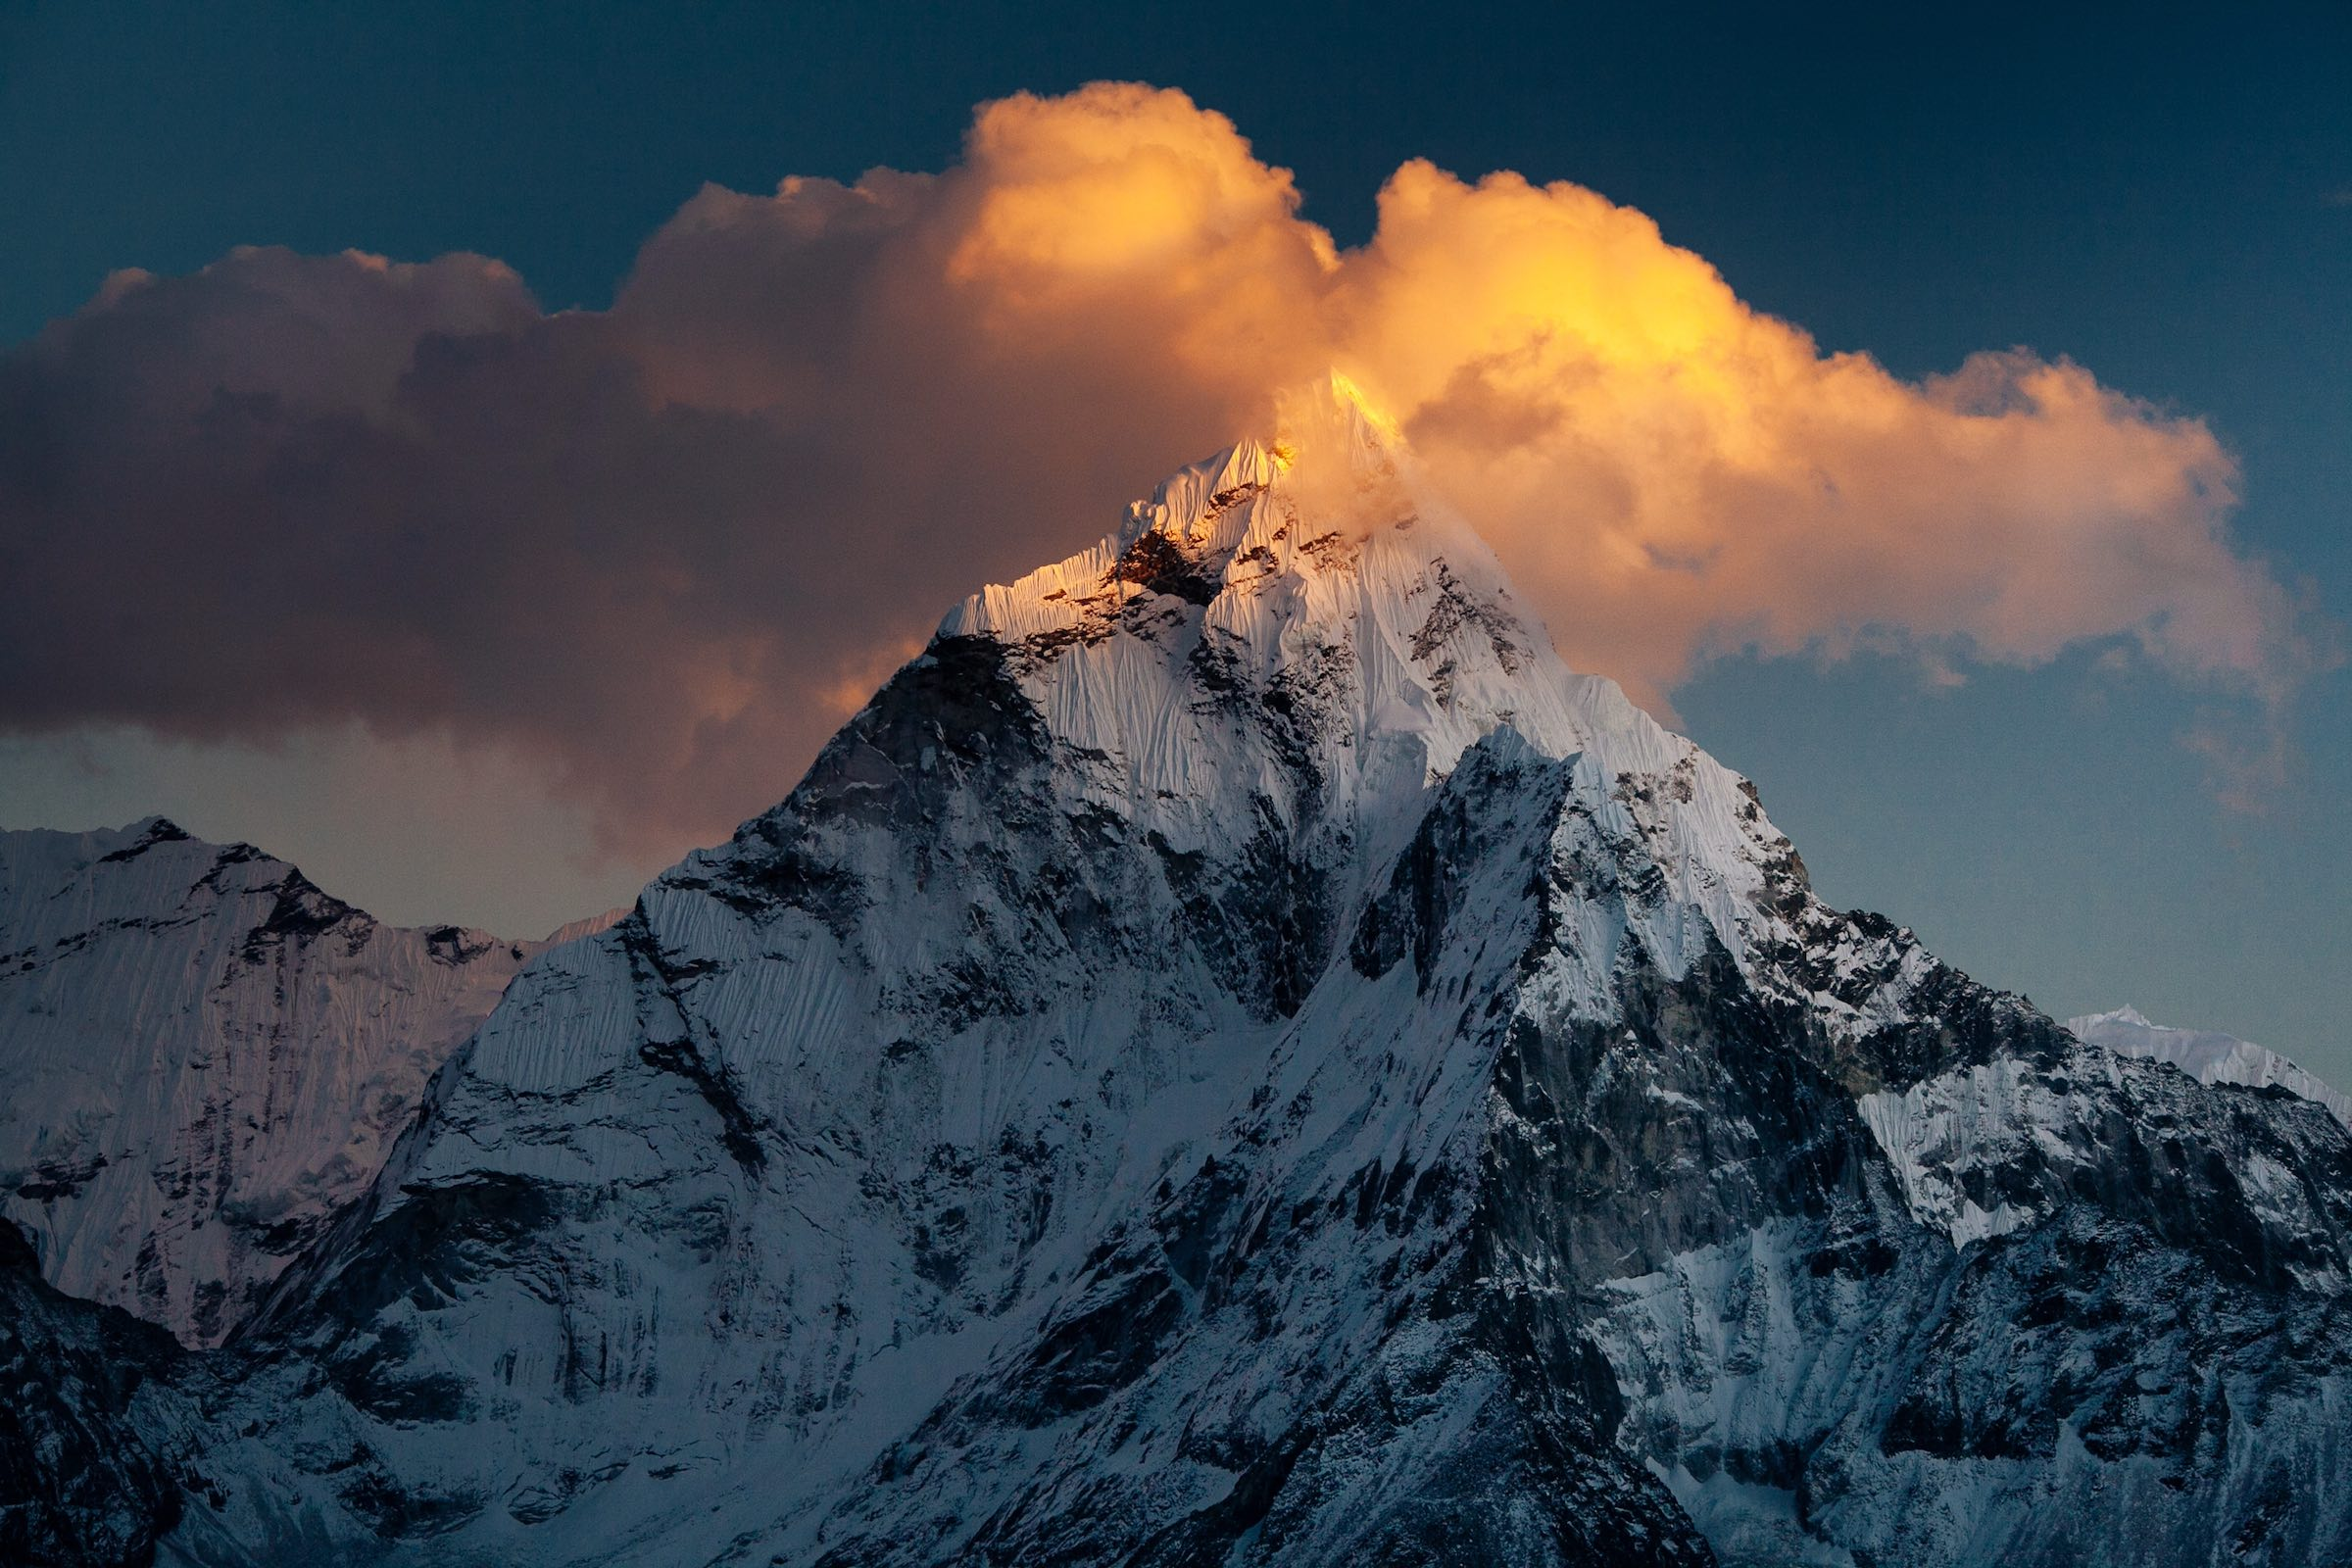 Ready to see the mountains? - starting from $4,200 for 12 to 14 nights